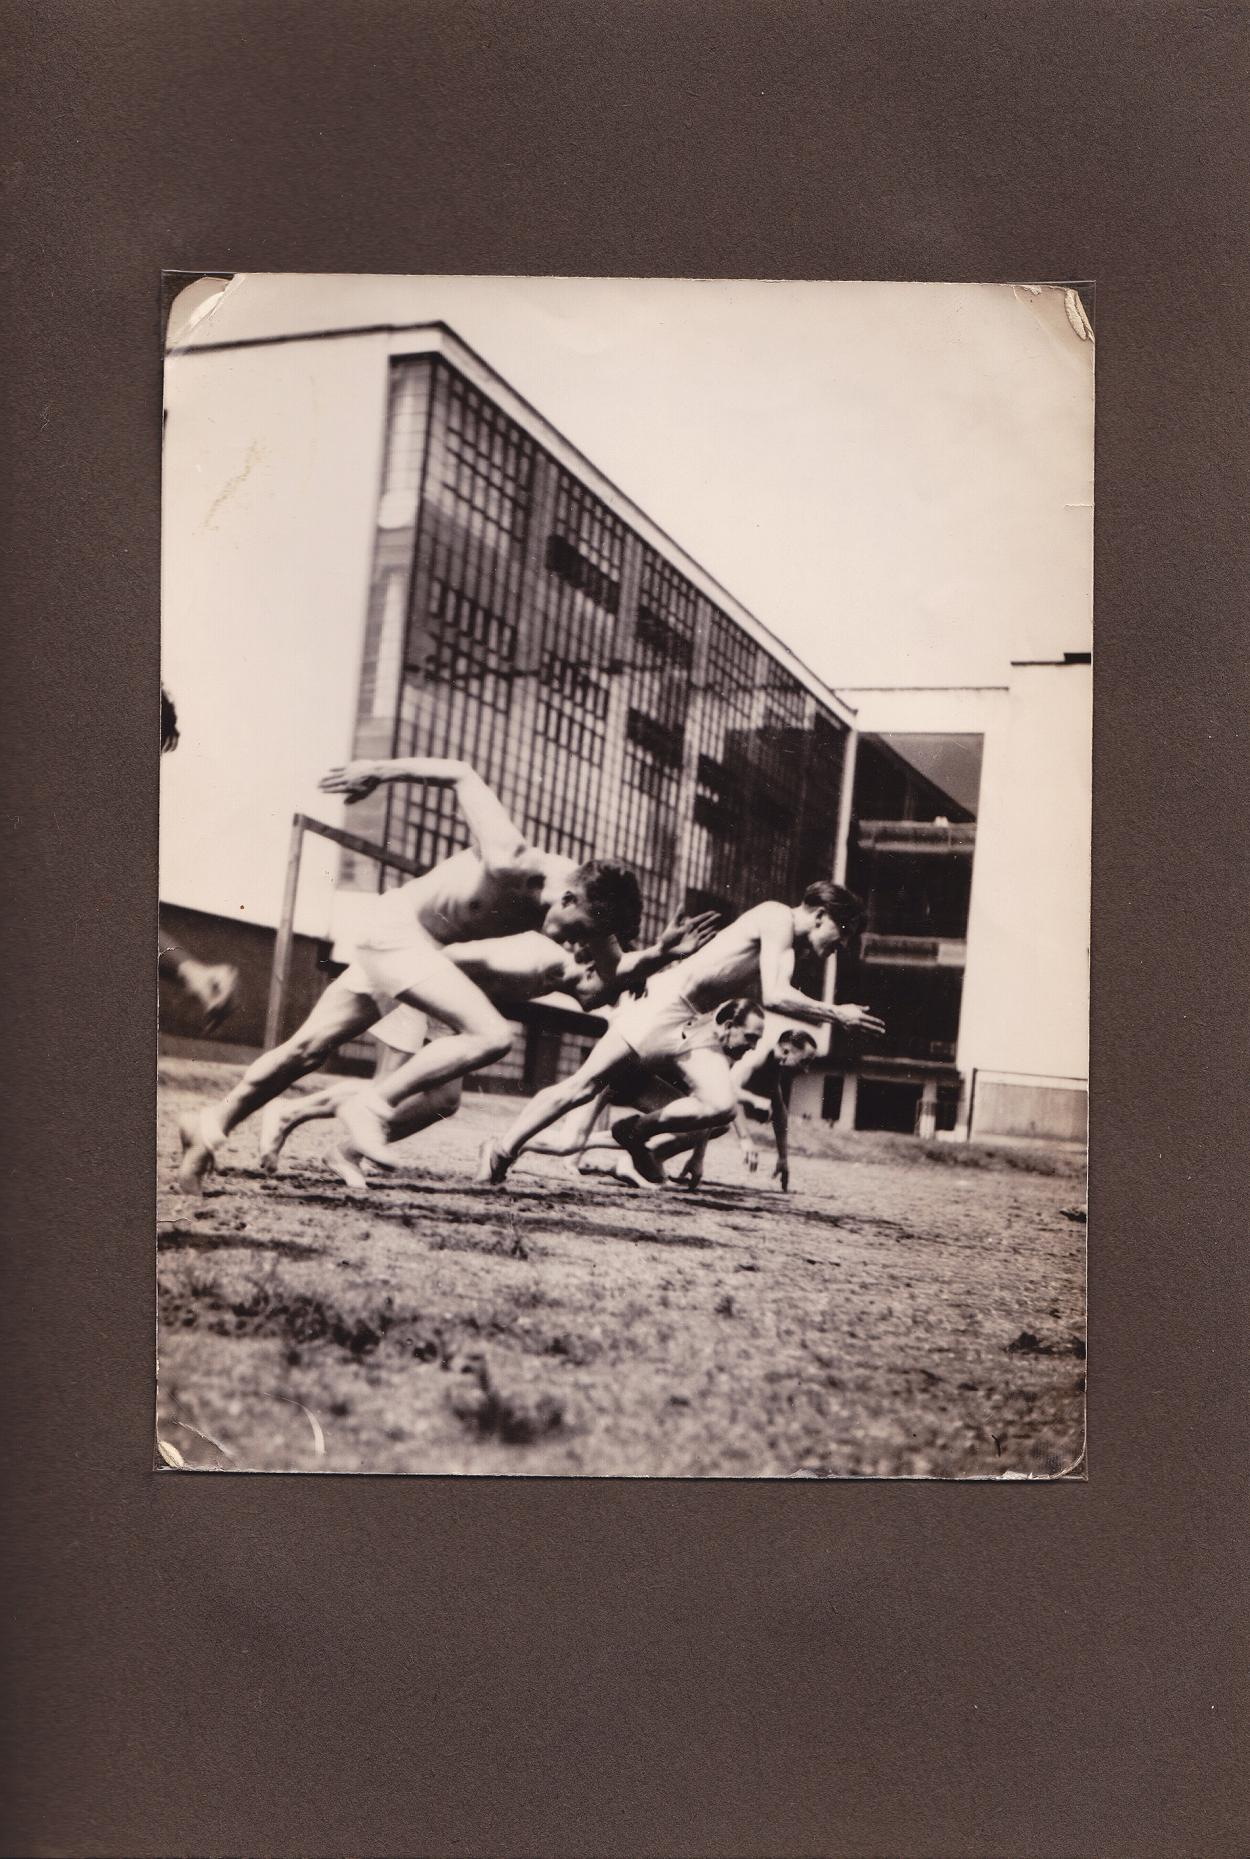 Men racing each other in the 1930s